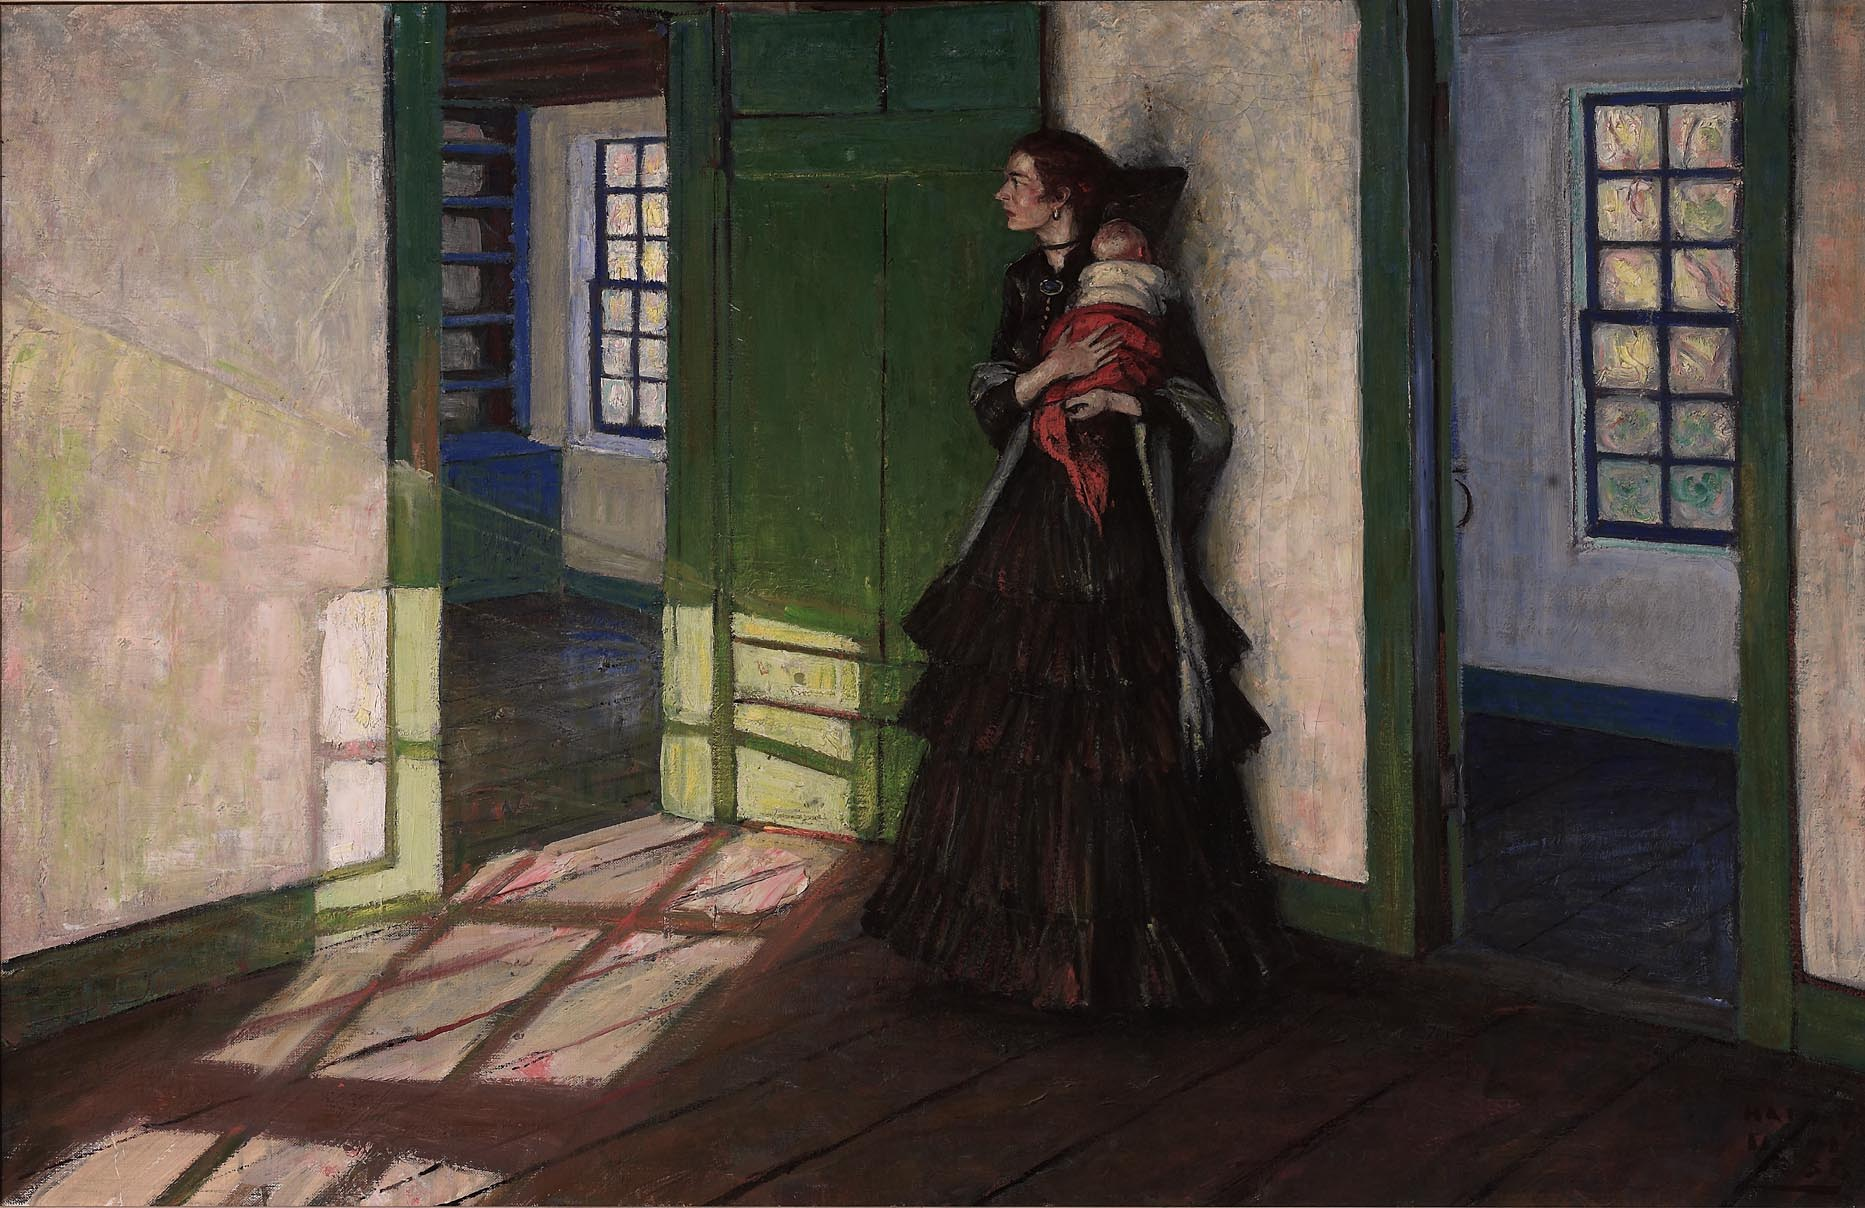 A woman in an empty house wearing a dark dress clutching a baby to her shoulder.